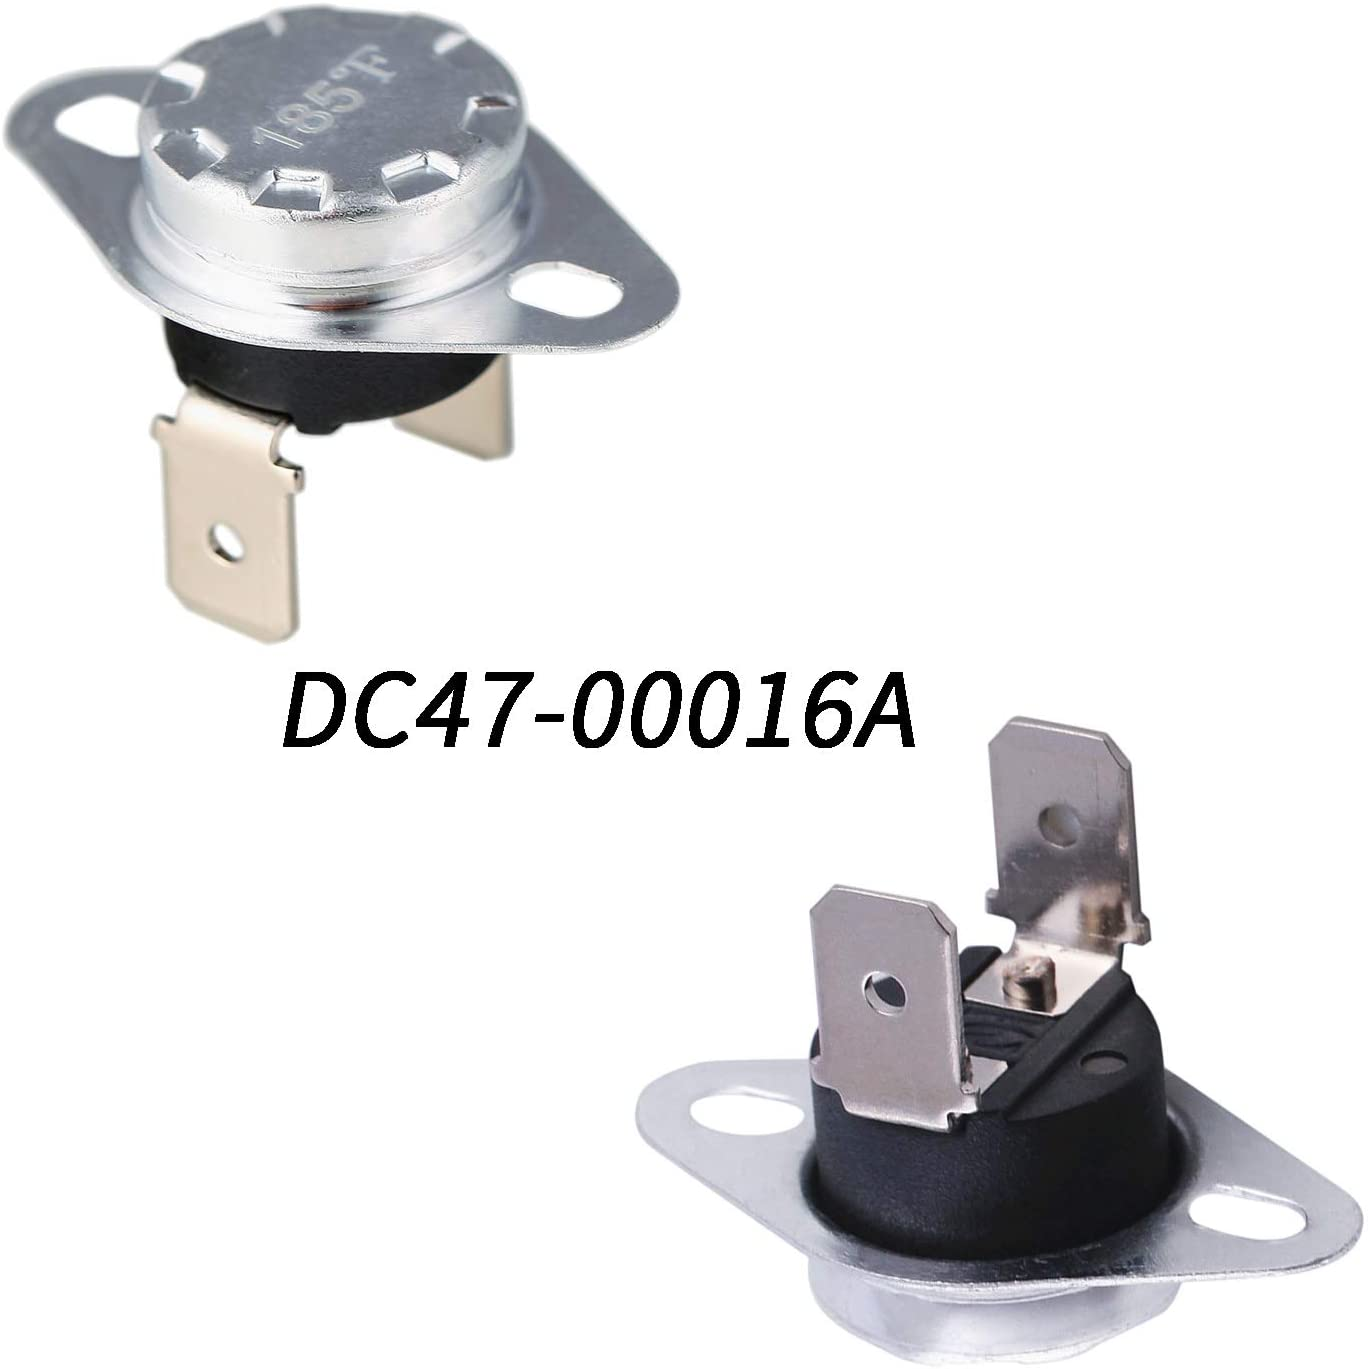 DC47-00019A Dryer Heating Element,DC96-00887A and DC47-00016A Thermal Fuse Thermostat,DC47-00018A Thermal Cut-Off Fuse